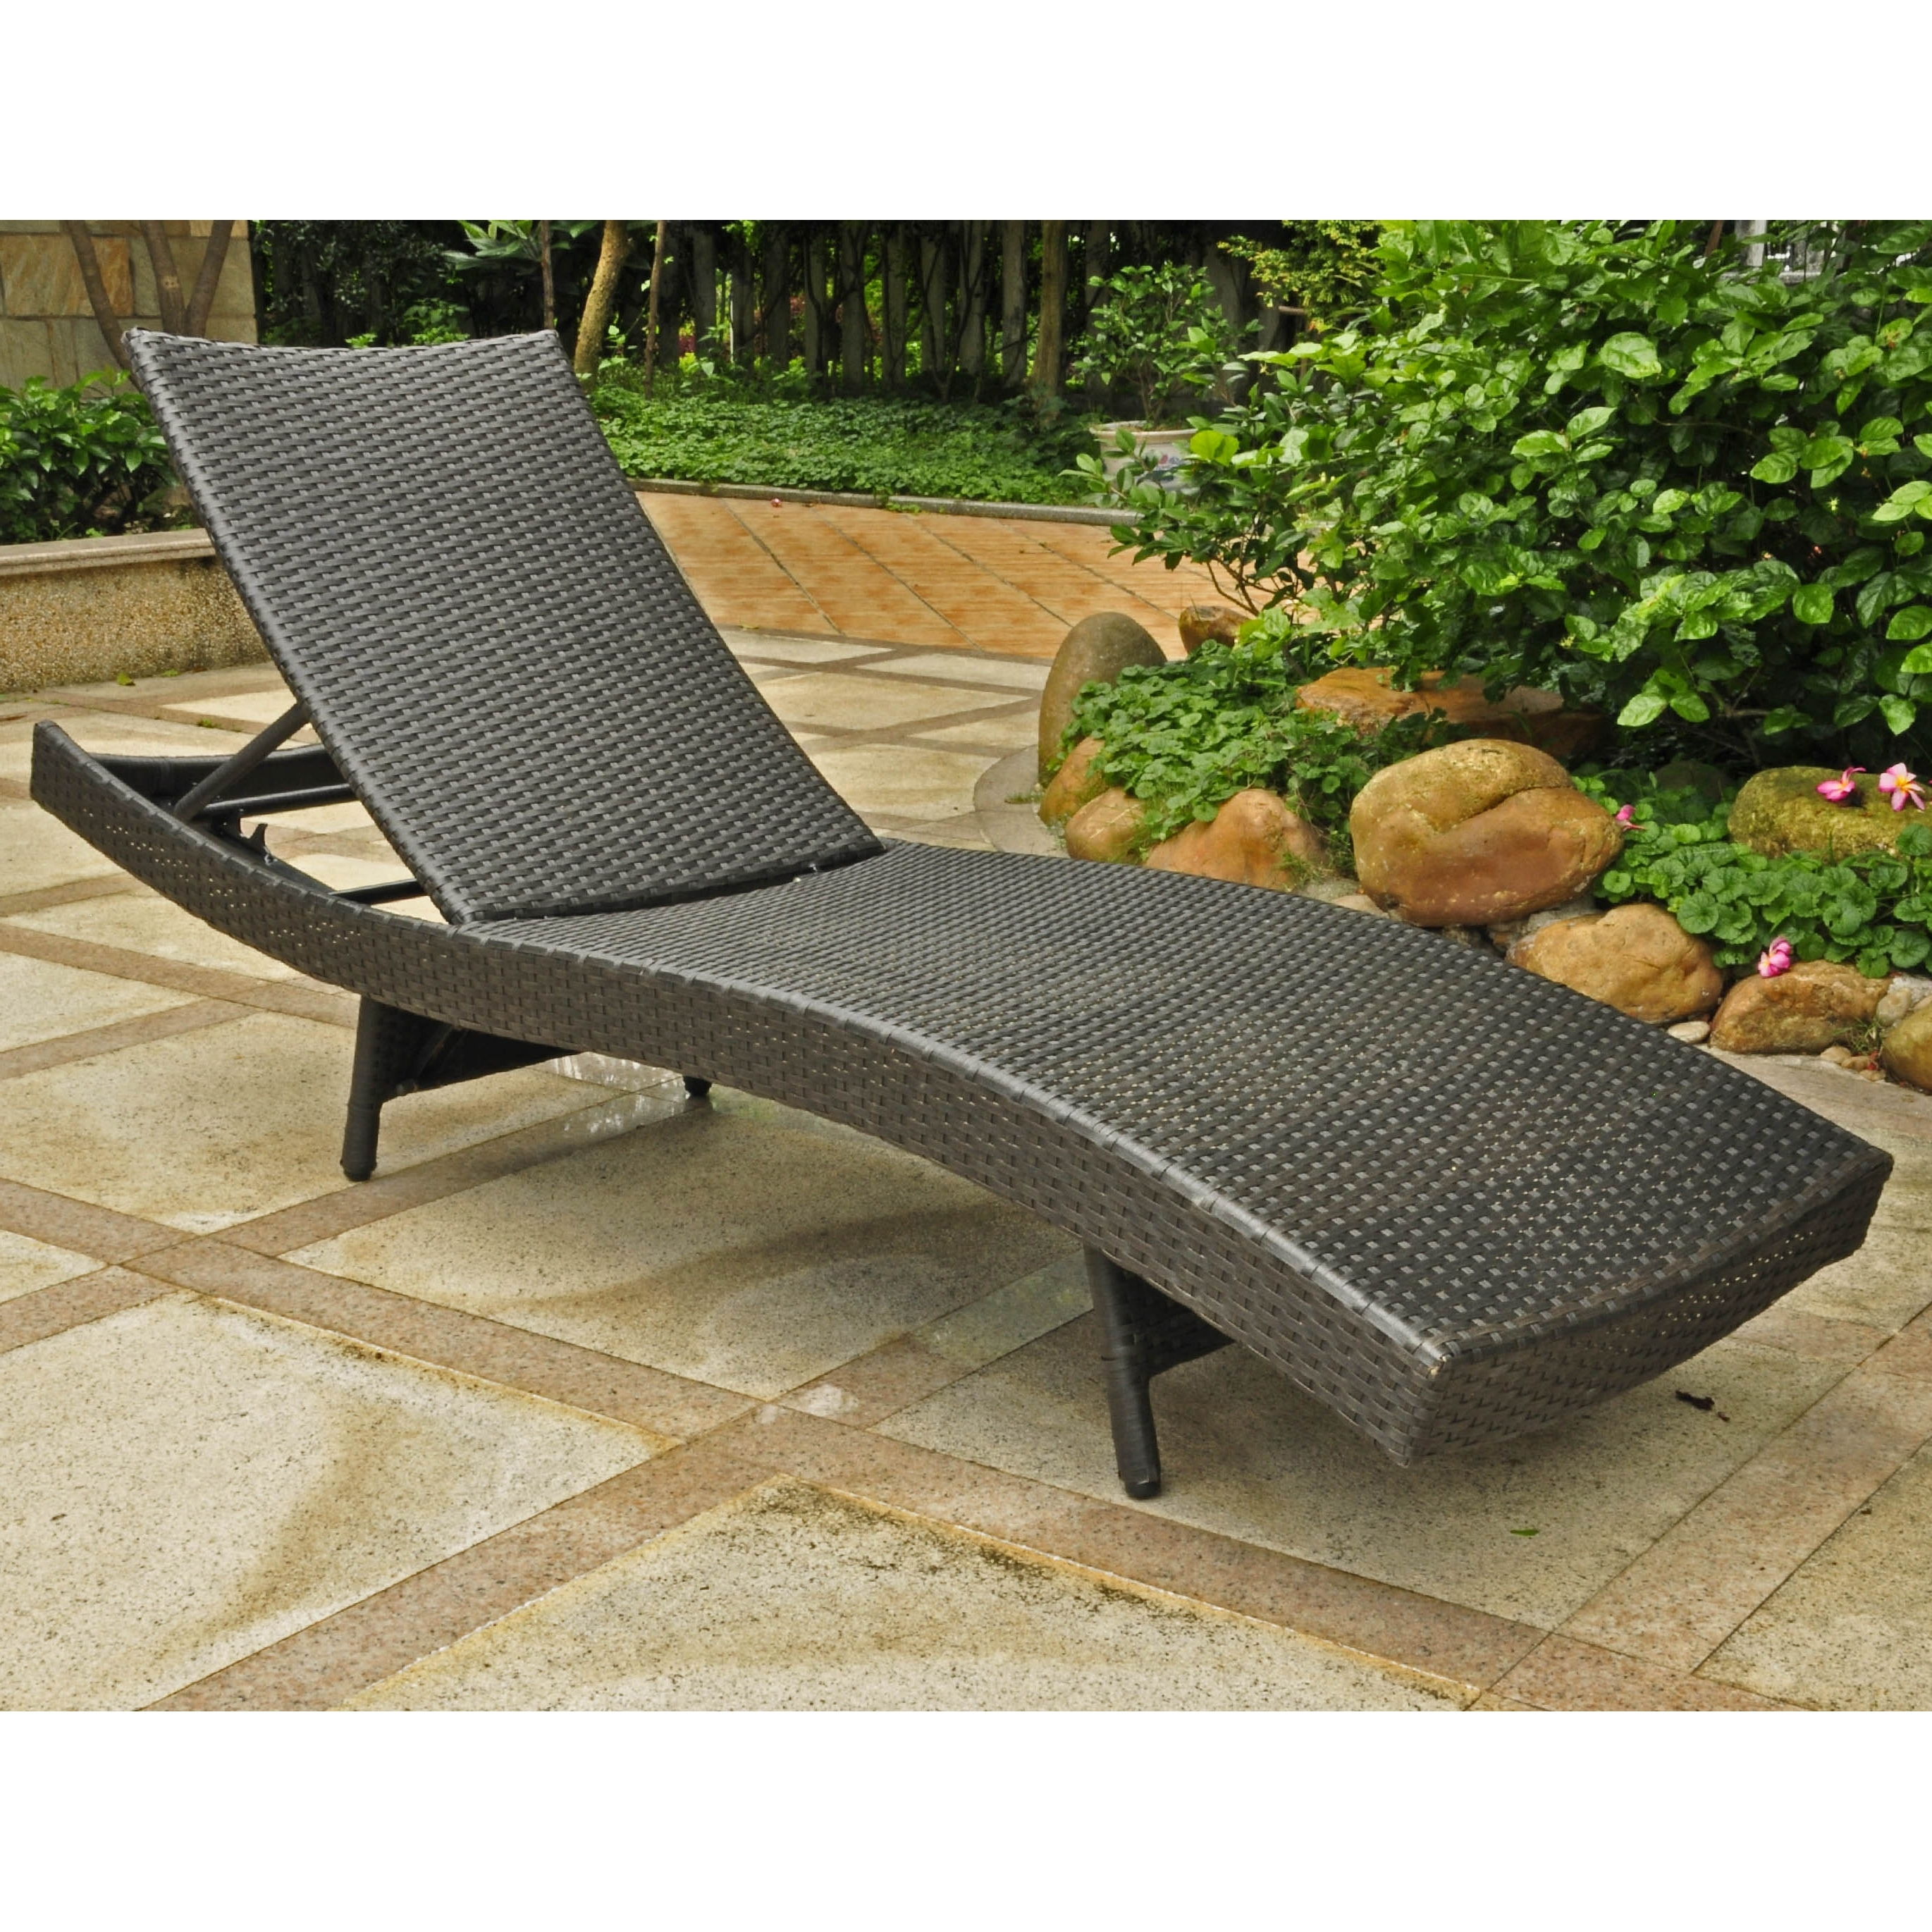 Kettler Lounge 15 Best Collection Of Kettler Chaise Lounge Chairs